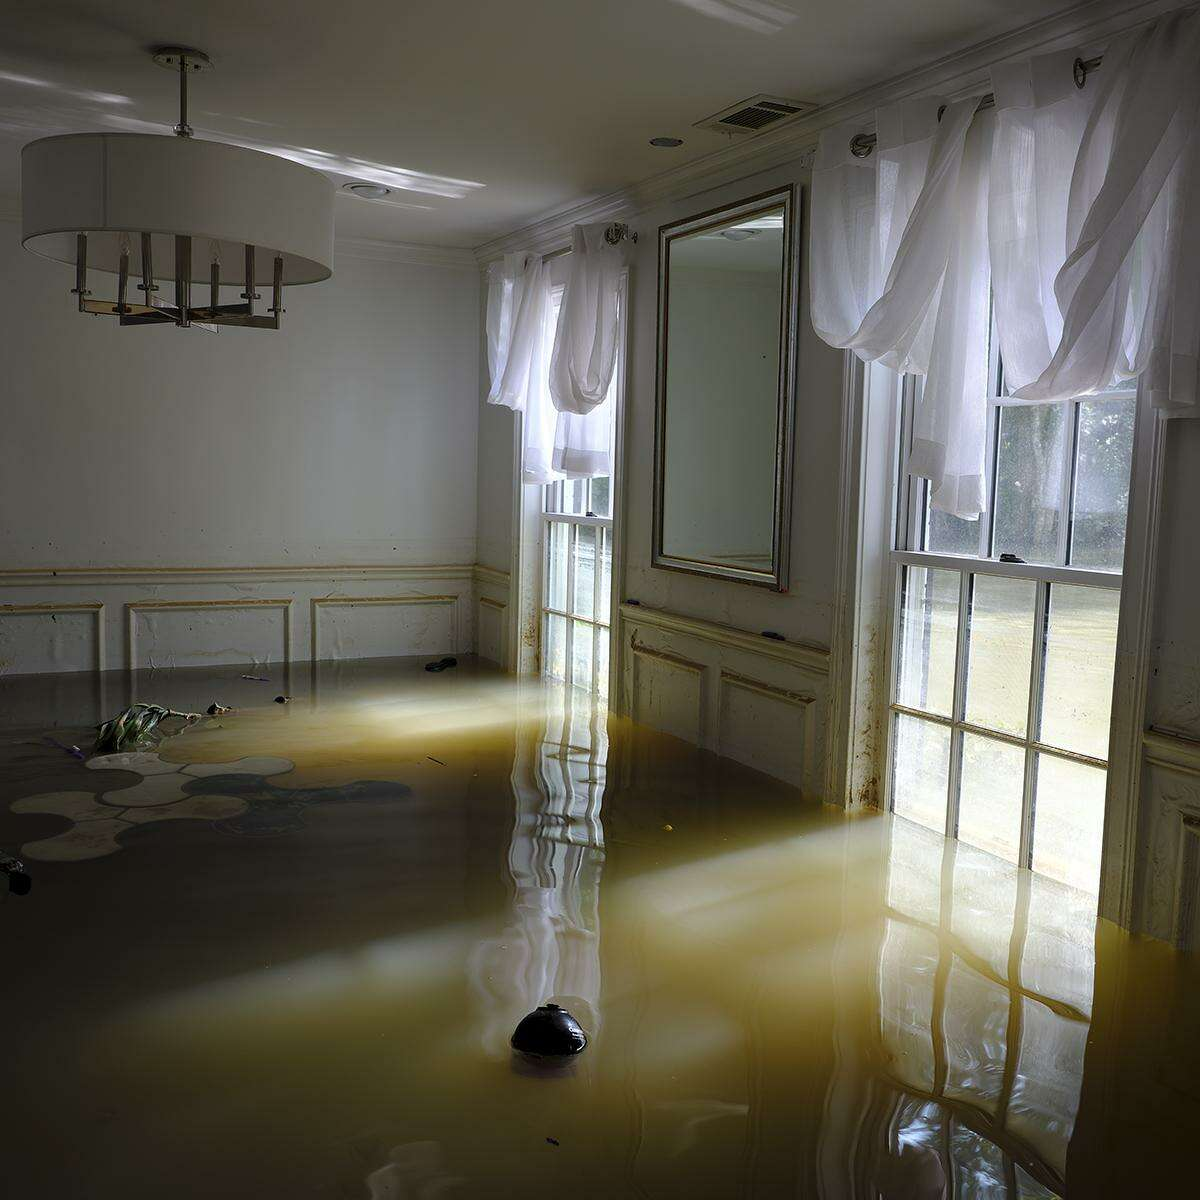 """Gideon Mendel's """"The home of David Lim, Rancho Bauer Drive, Memorial Neighborhood, Houston, Texas,"""" shot last September, is among works on view in """"Deluge,"""" one of several flood-based shows on view at FotoFest Sept. 6-Nov. 3. About 50 images by Houston Chronicle photographers are featured with photos from the community in the other show, """"Seeing Harvey."""""""